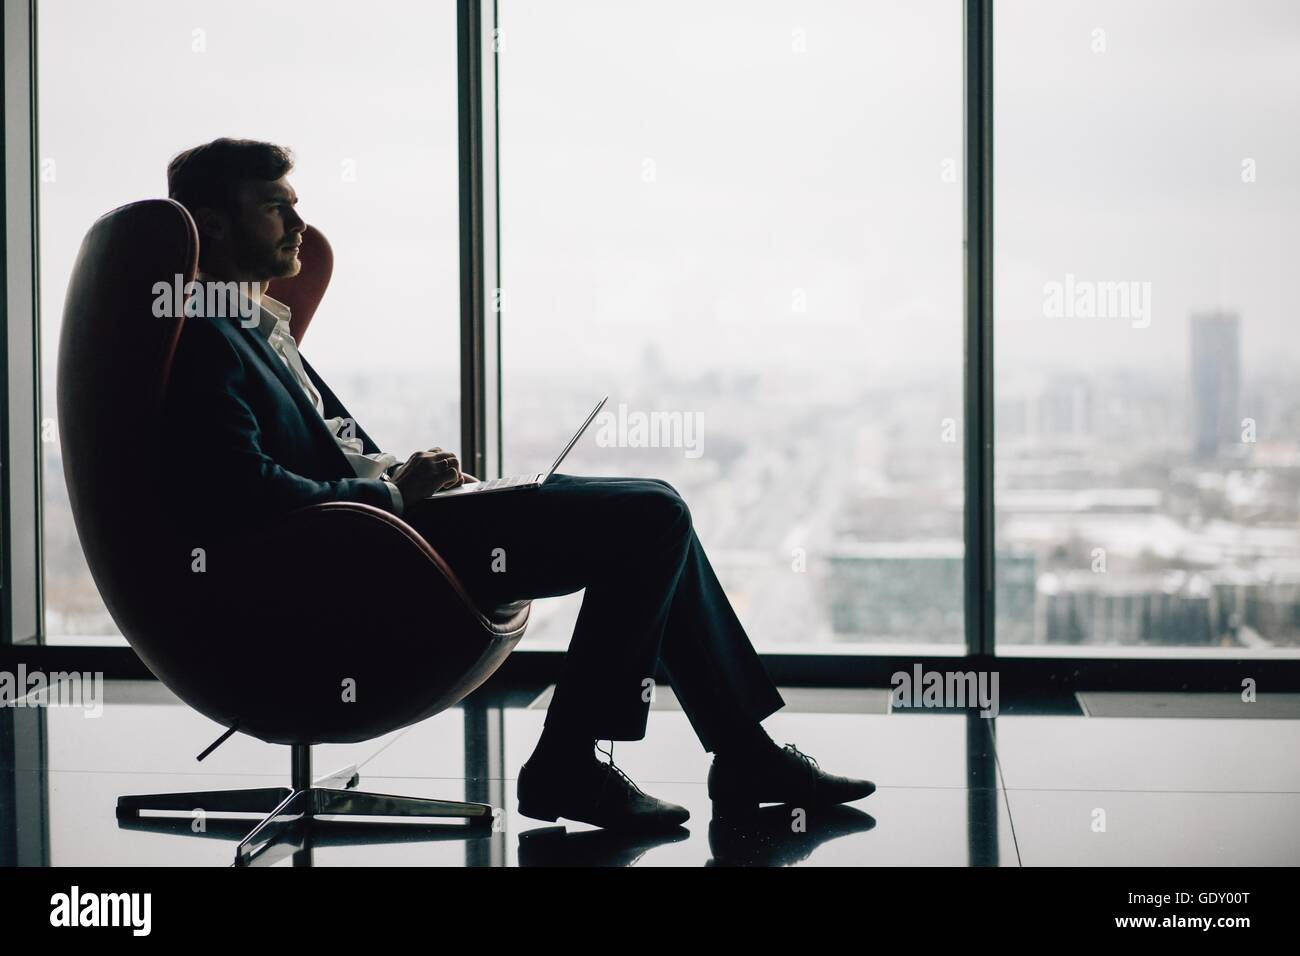 Silhouette of young business man with laptop seated on a chair, winter city landscape - Stock Image